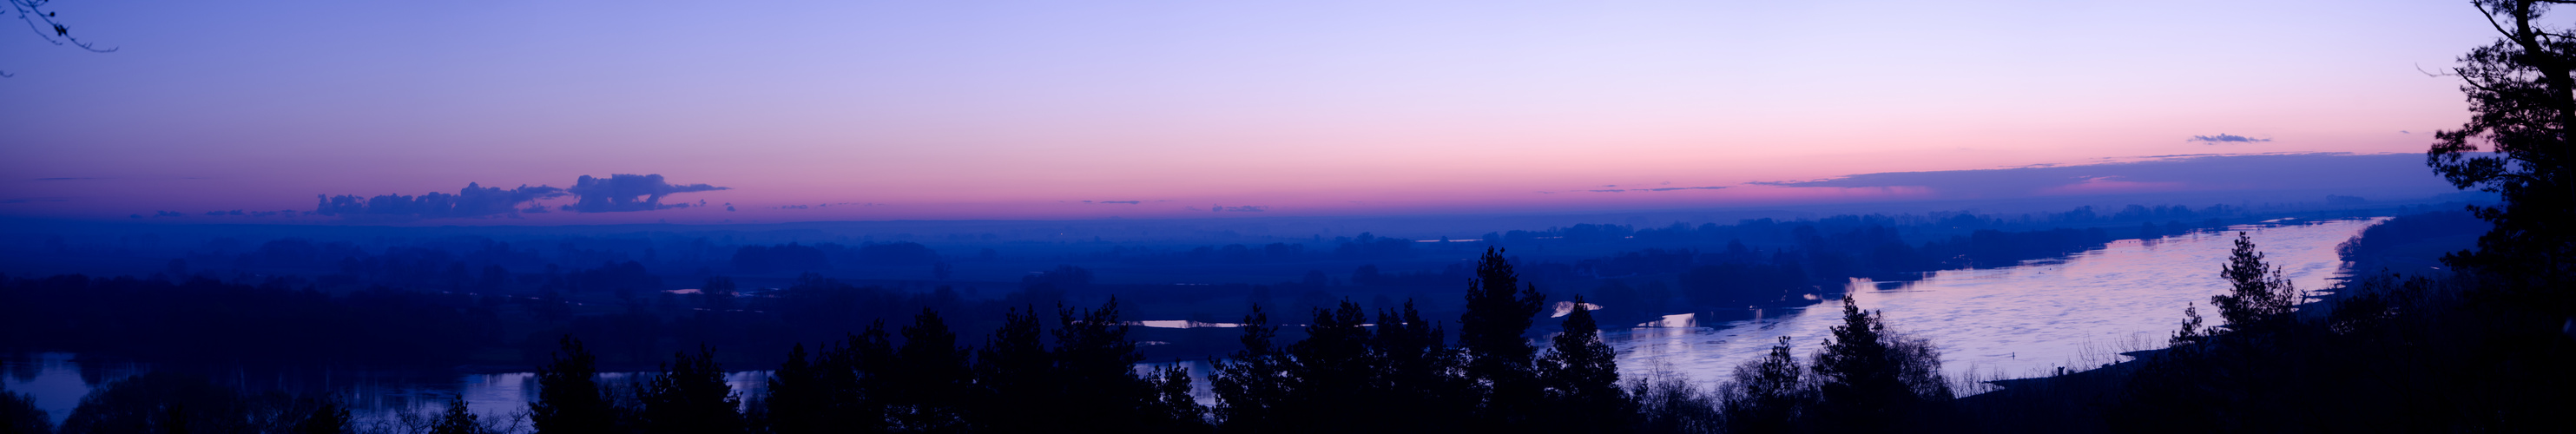 Sonnenaufgang Panorama - Ostersonntag 08.04.2012